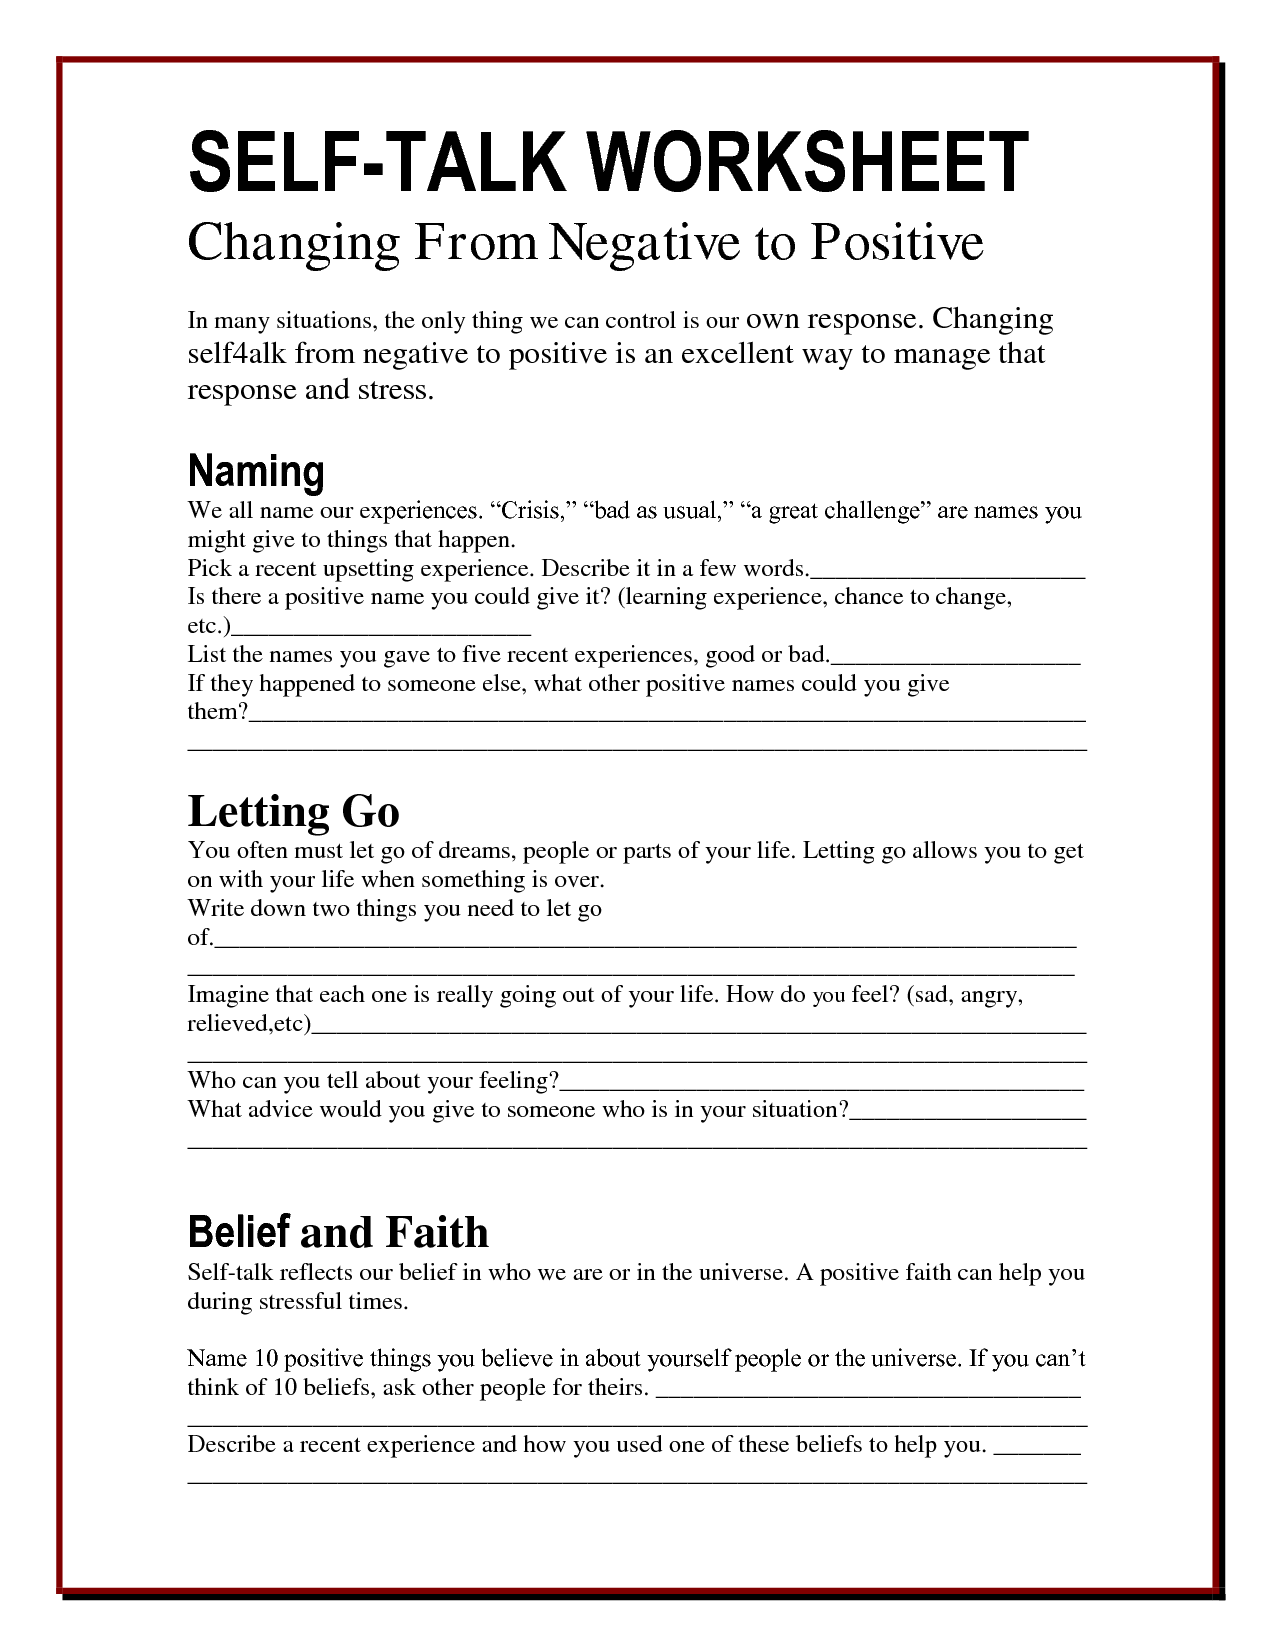 For more tips to better manage the anxiety in your life visit – Negative Self Talk Worksheet